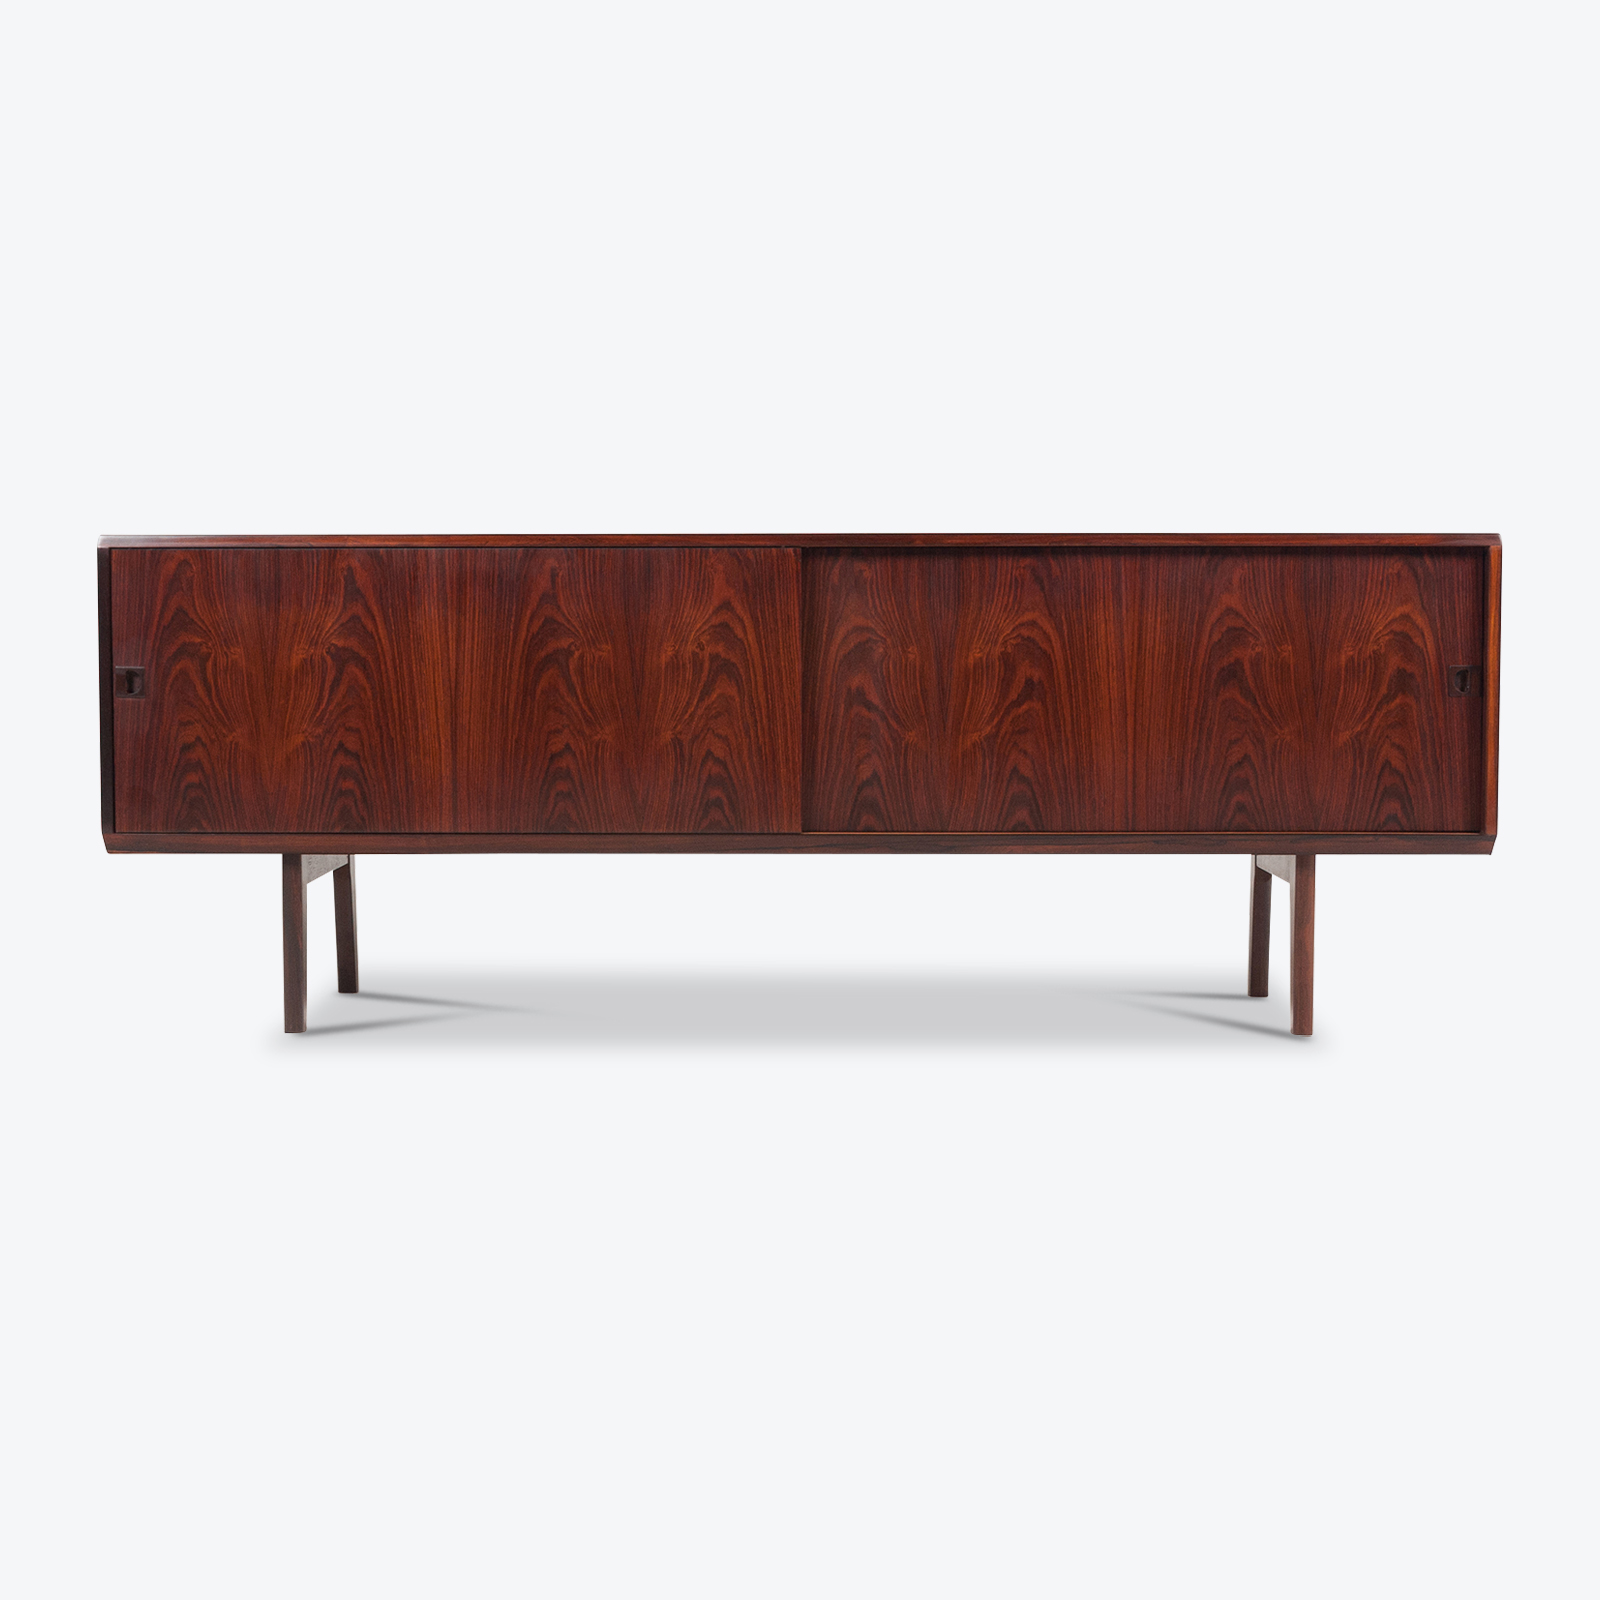 Sideboard by brouer furniture in rosewood with oak